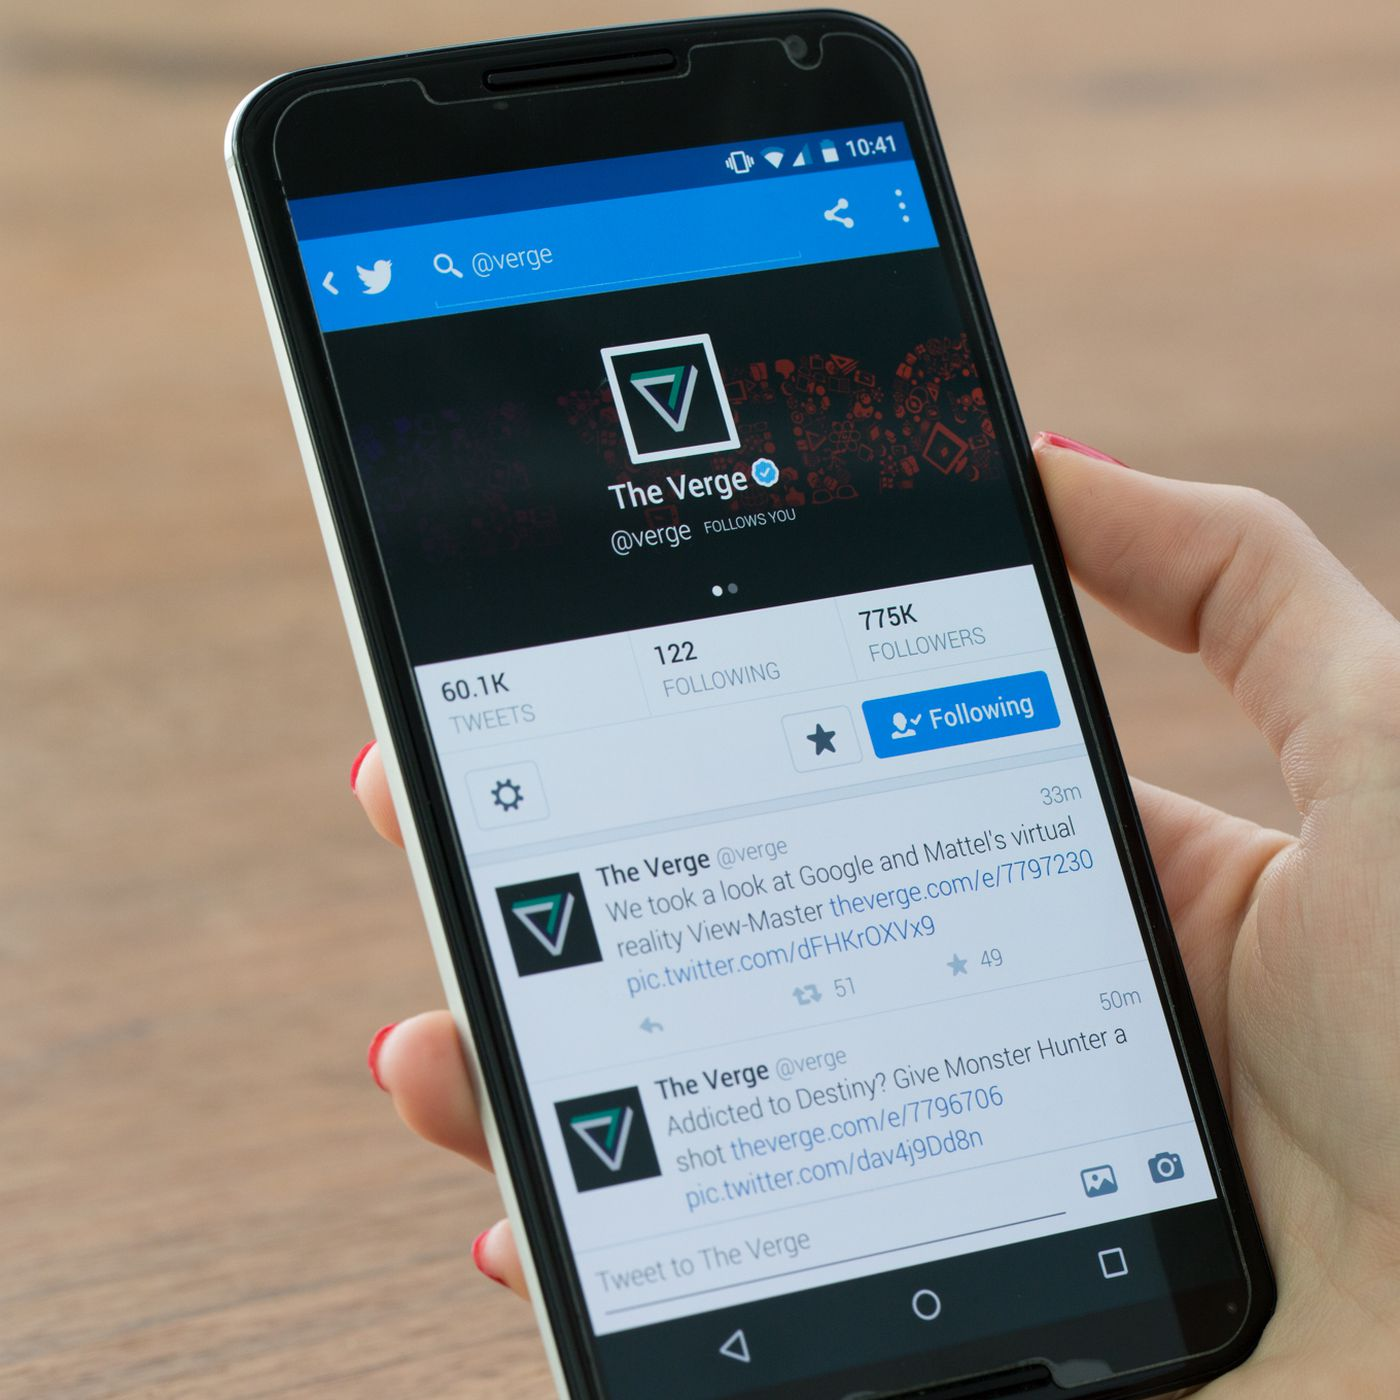 Twitter Has A New Head Of Product Who Barely Uses The Product The